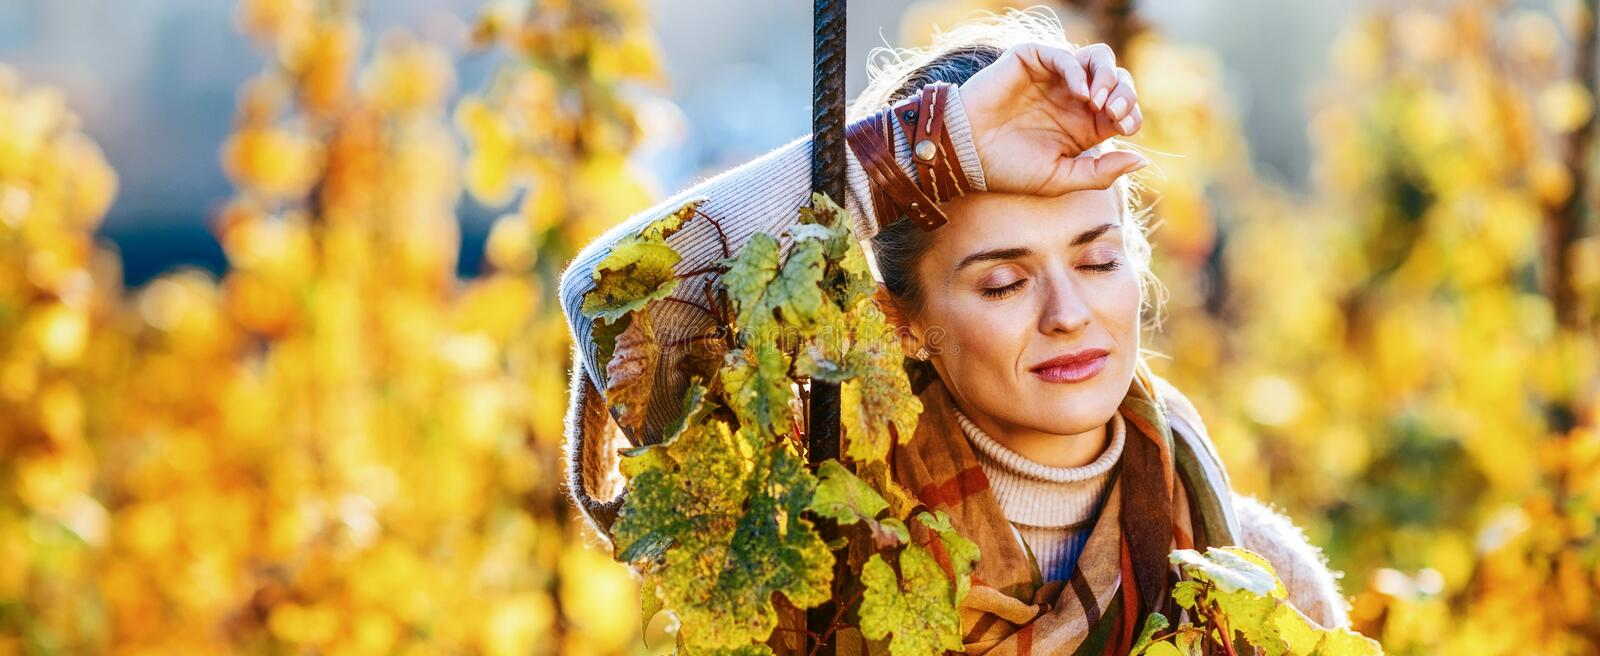 Relaxed woman winegrower standing in vineyard outdoors in autumn stock image